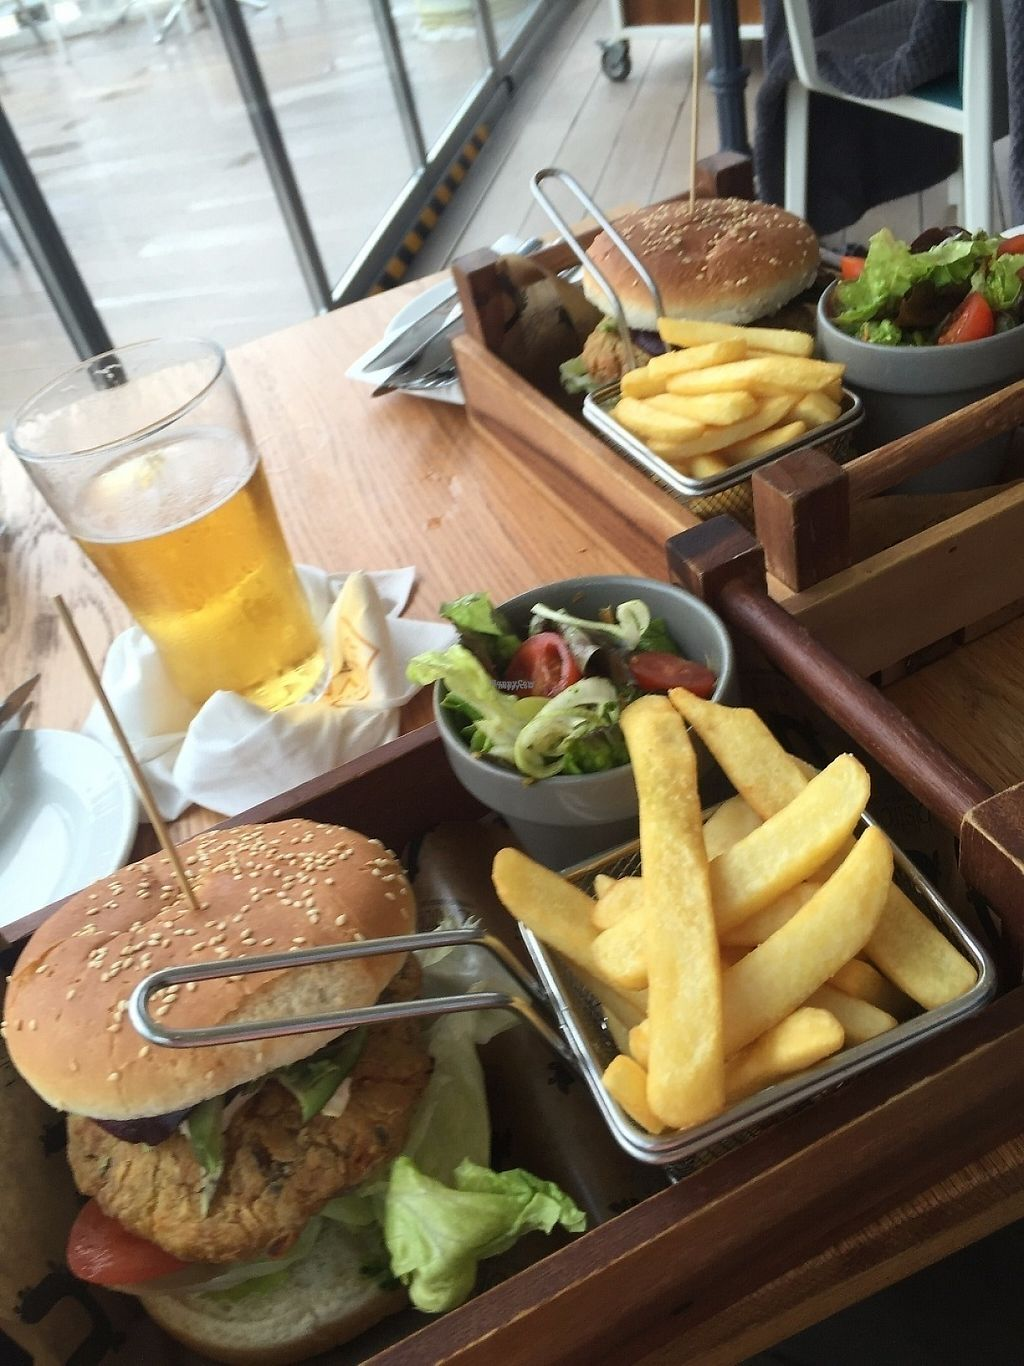 """Photo of Naar RestoBar  by <a href=""""/members/profile/PlanetJanet"""">PlanetJanet</a> <br/>The vegan burger was amazing! <br/> April 3, 2017  - <a href='/contact/abuse/image/86405/244446'>Report</a>"""